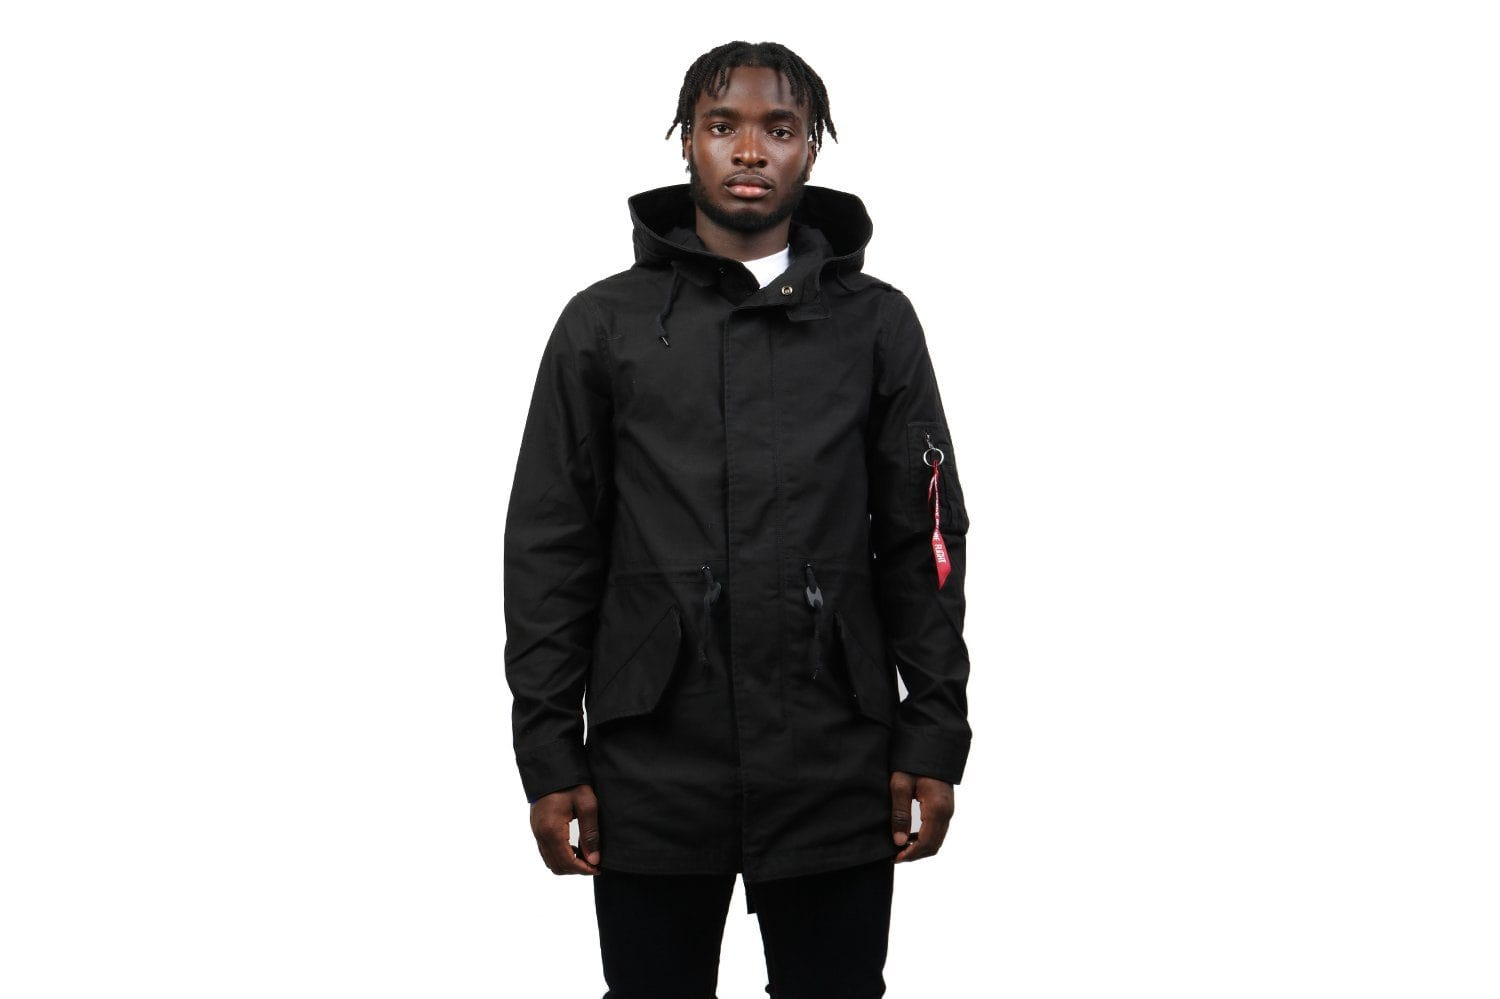 M-59 FISHTAIL JACKET MENS SOFTGOODS ALPHA INDUSTRIES BLACK M